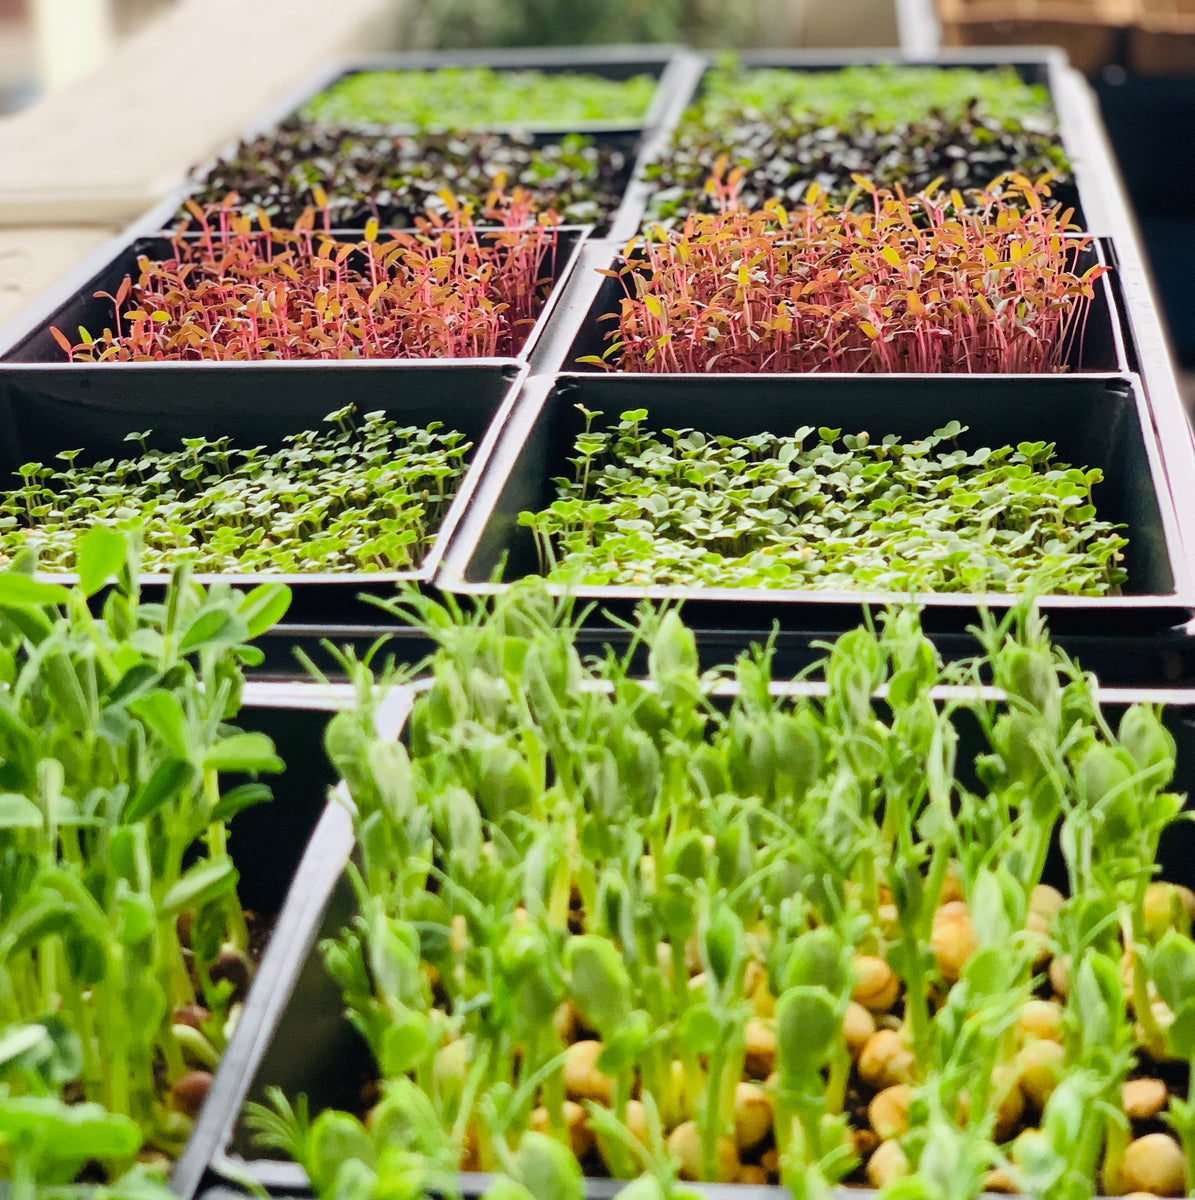 Singapore, Organic, gmo free, microgreen, vegetable seeds, grow edibles, farm edibles, grow edibles, workshop, untreated vegetable seeds, gardeners day out